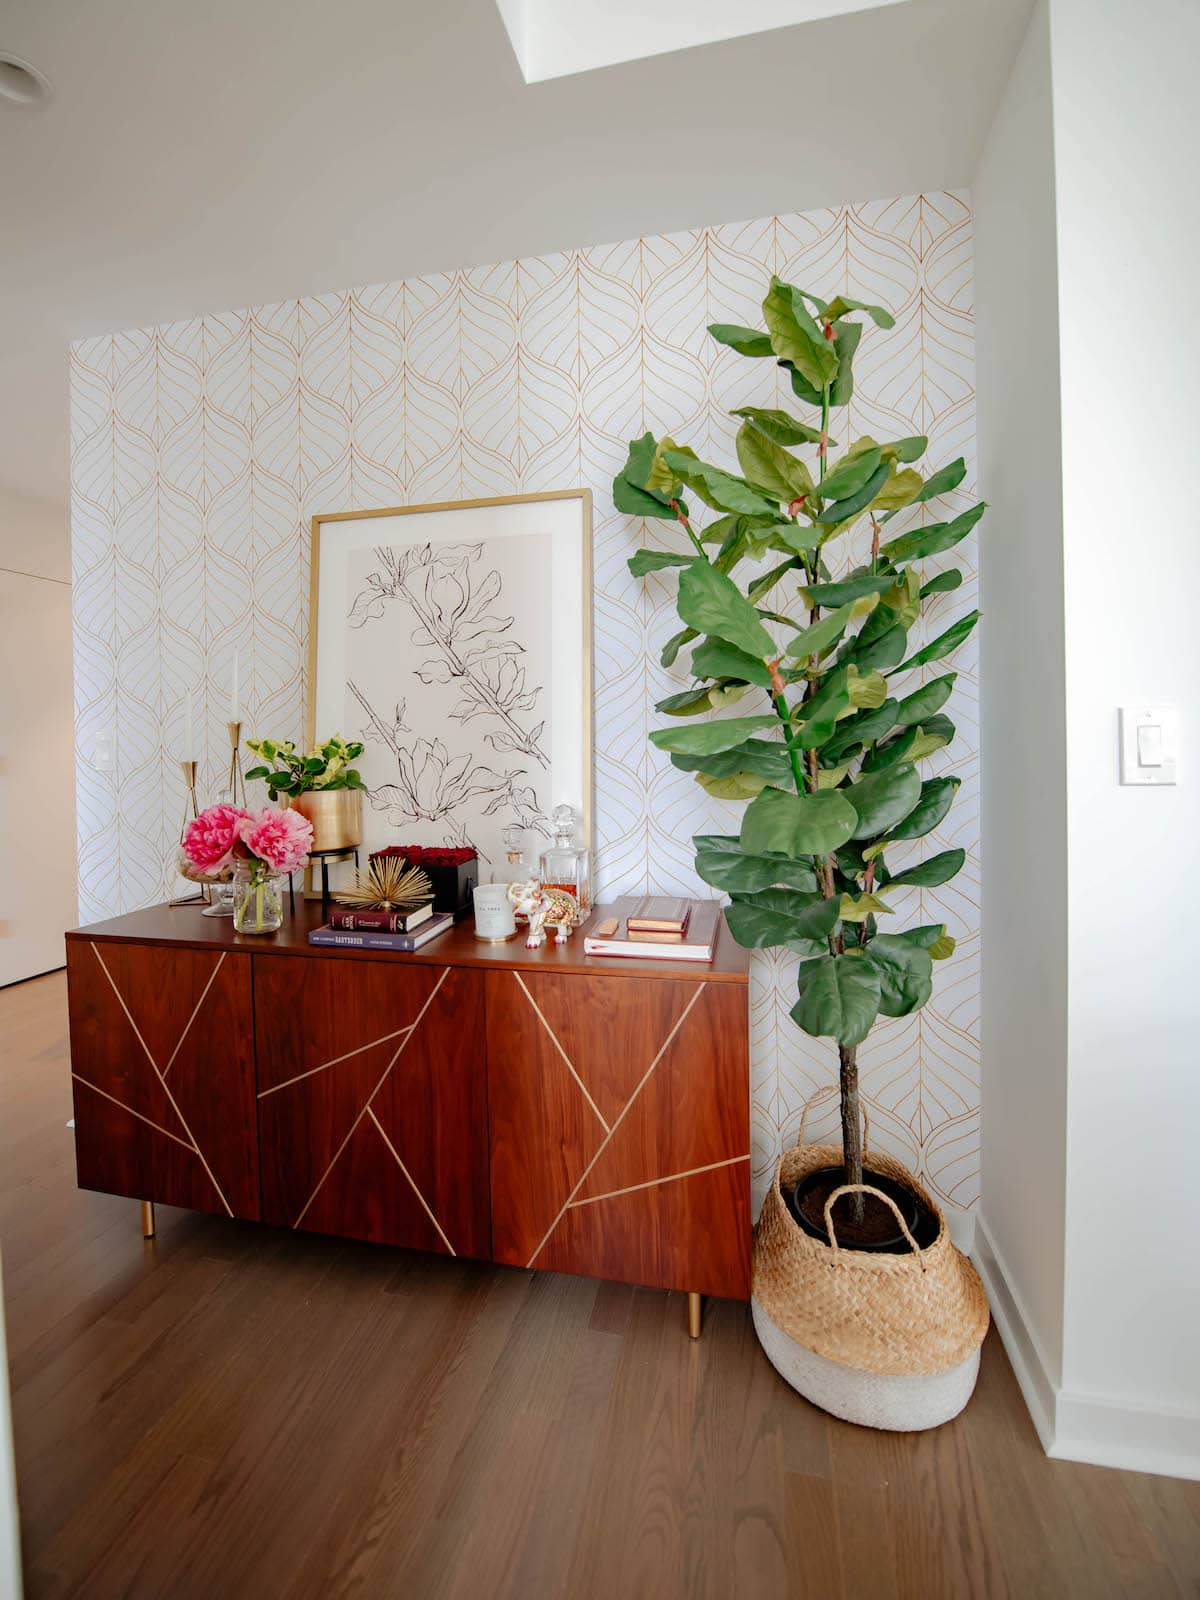 temporary wall coverings for your apartment wallpapered wall with console and fiddle leaf fig tree